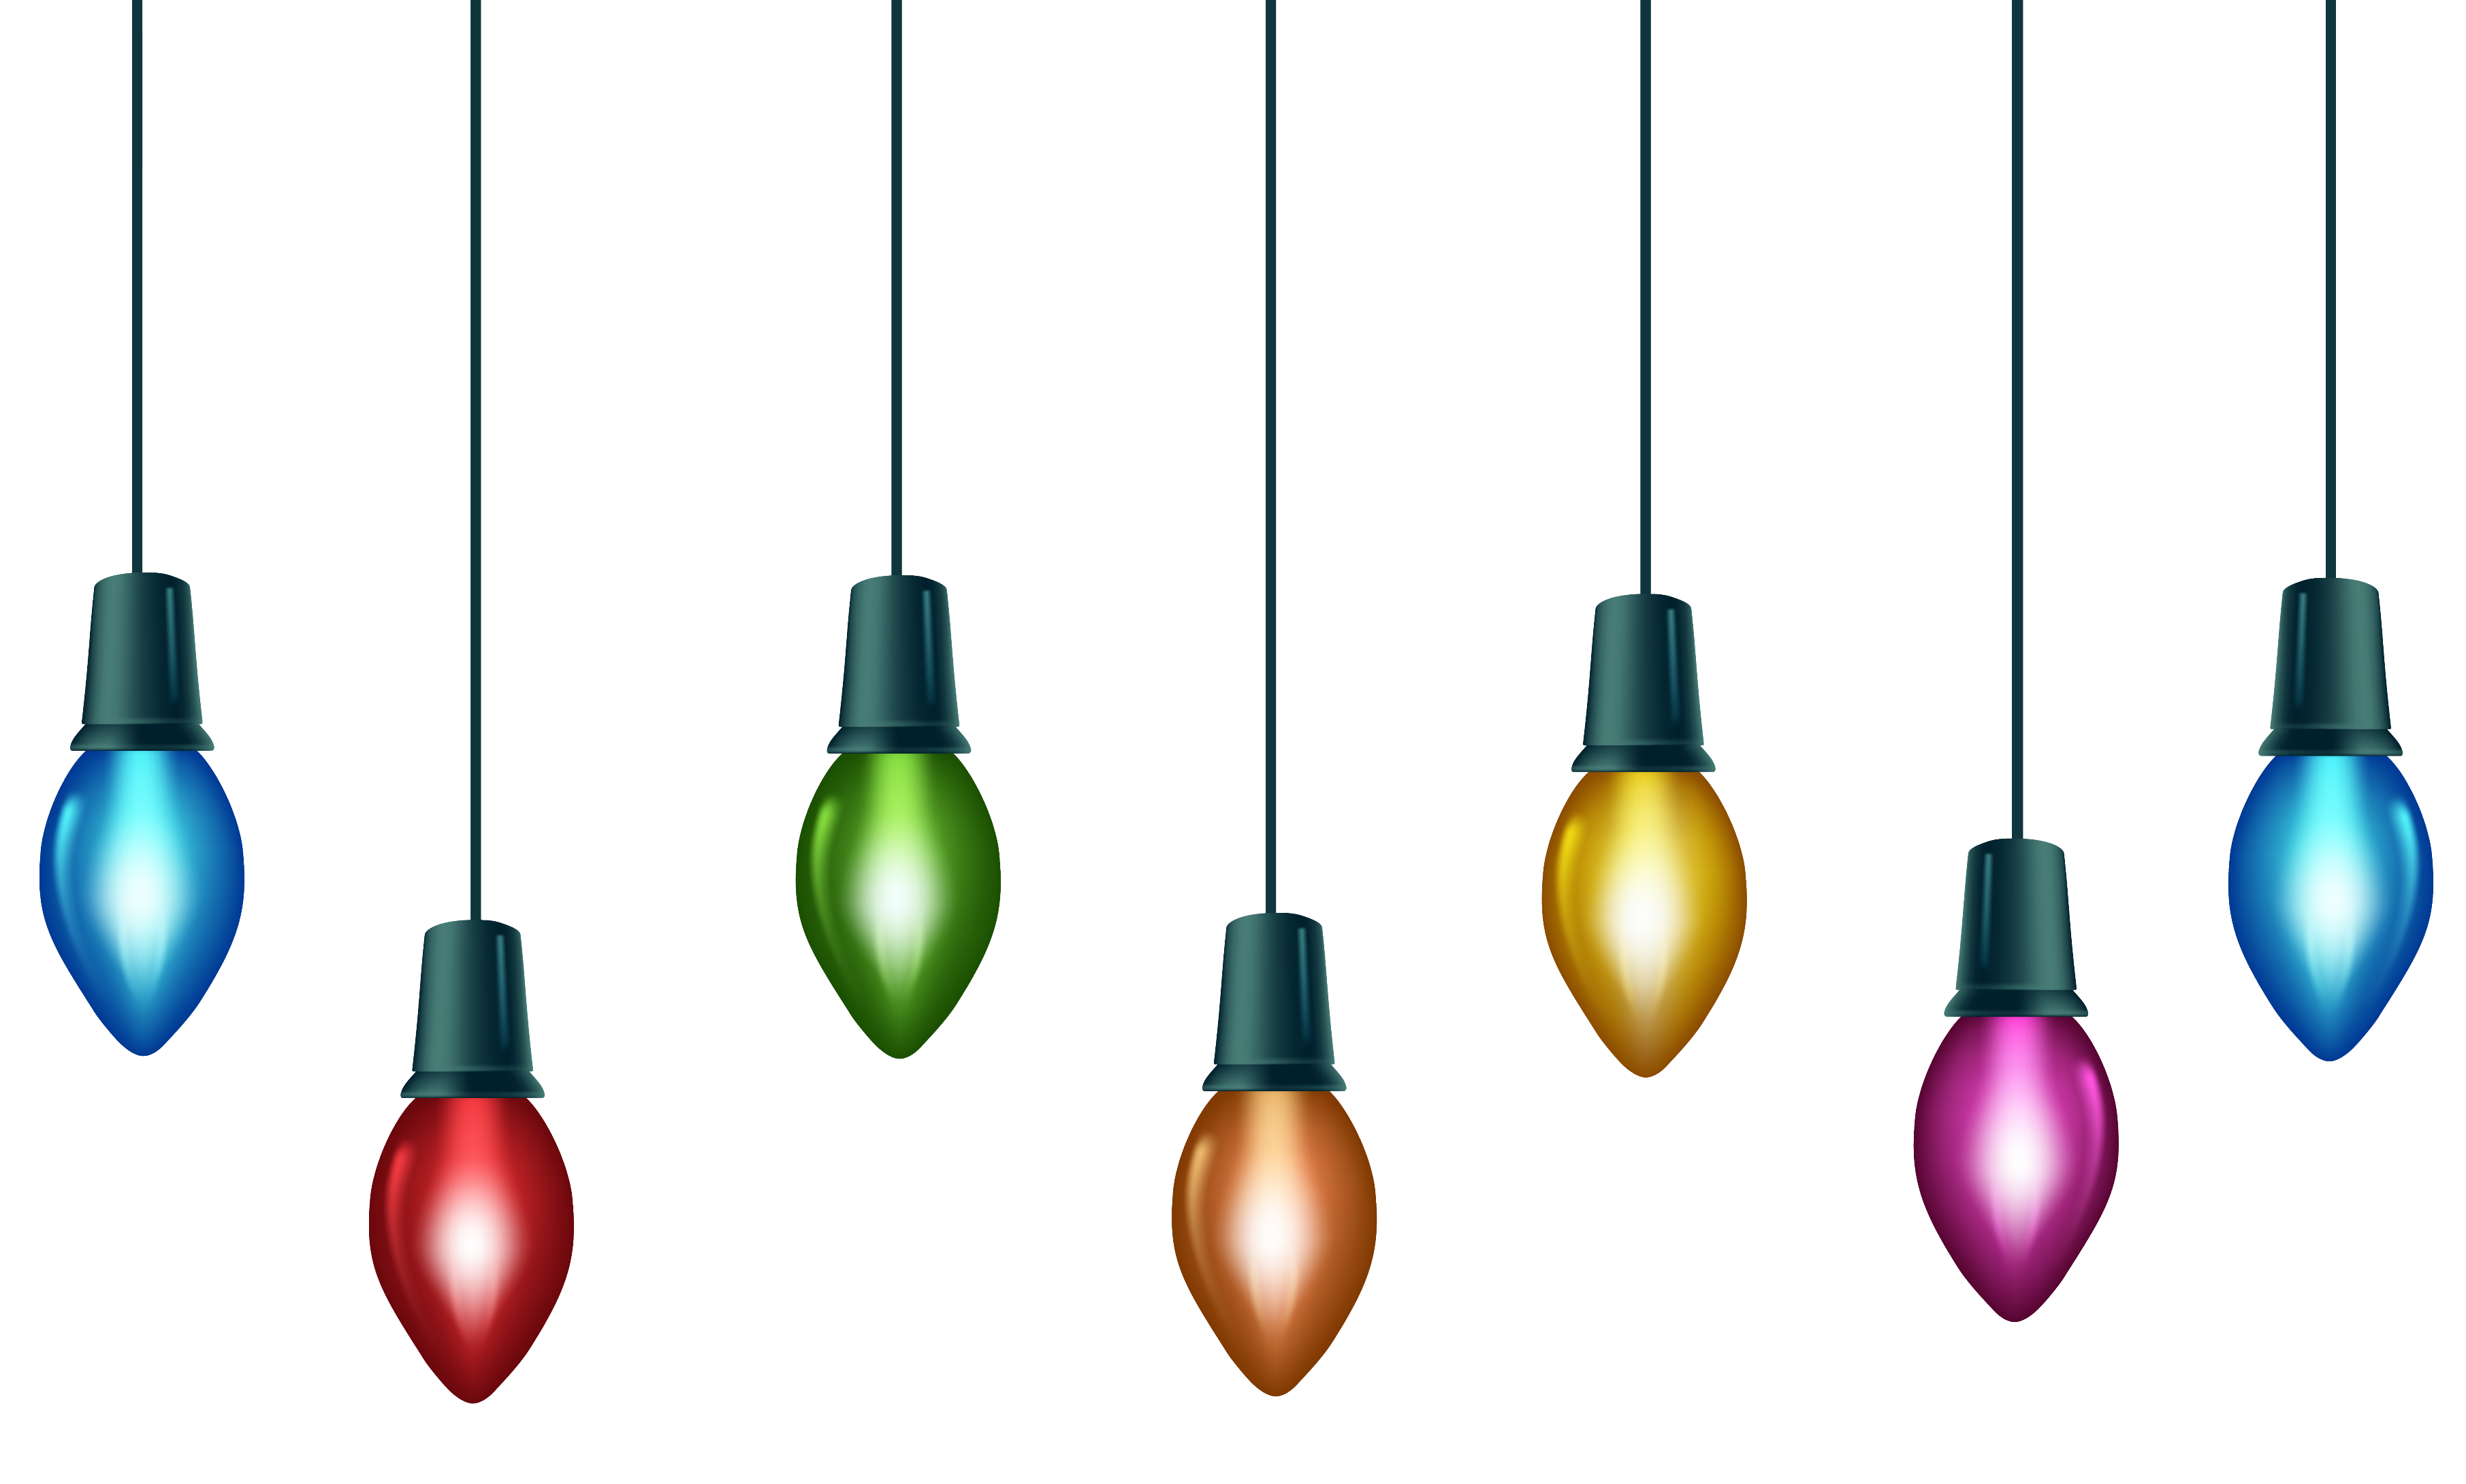 Light clipart #3, Download drawings